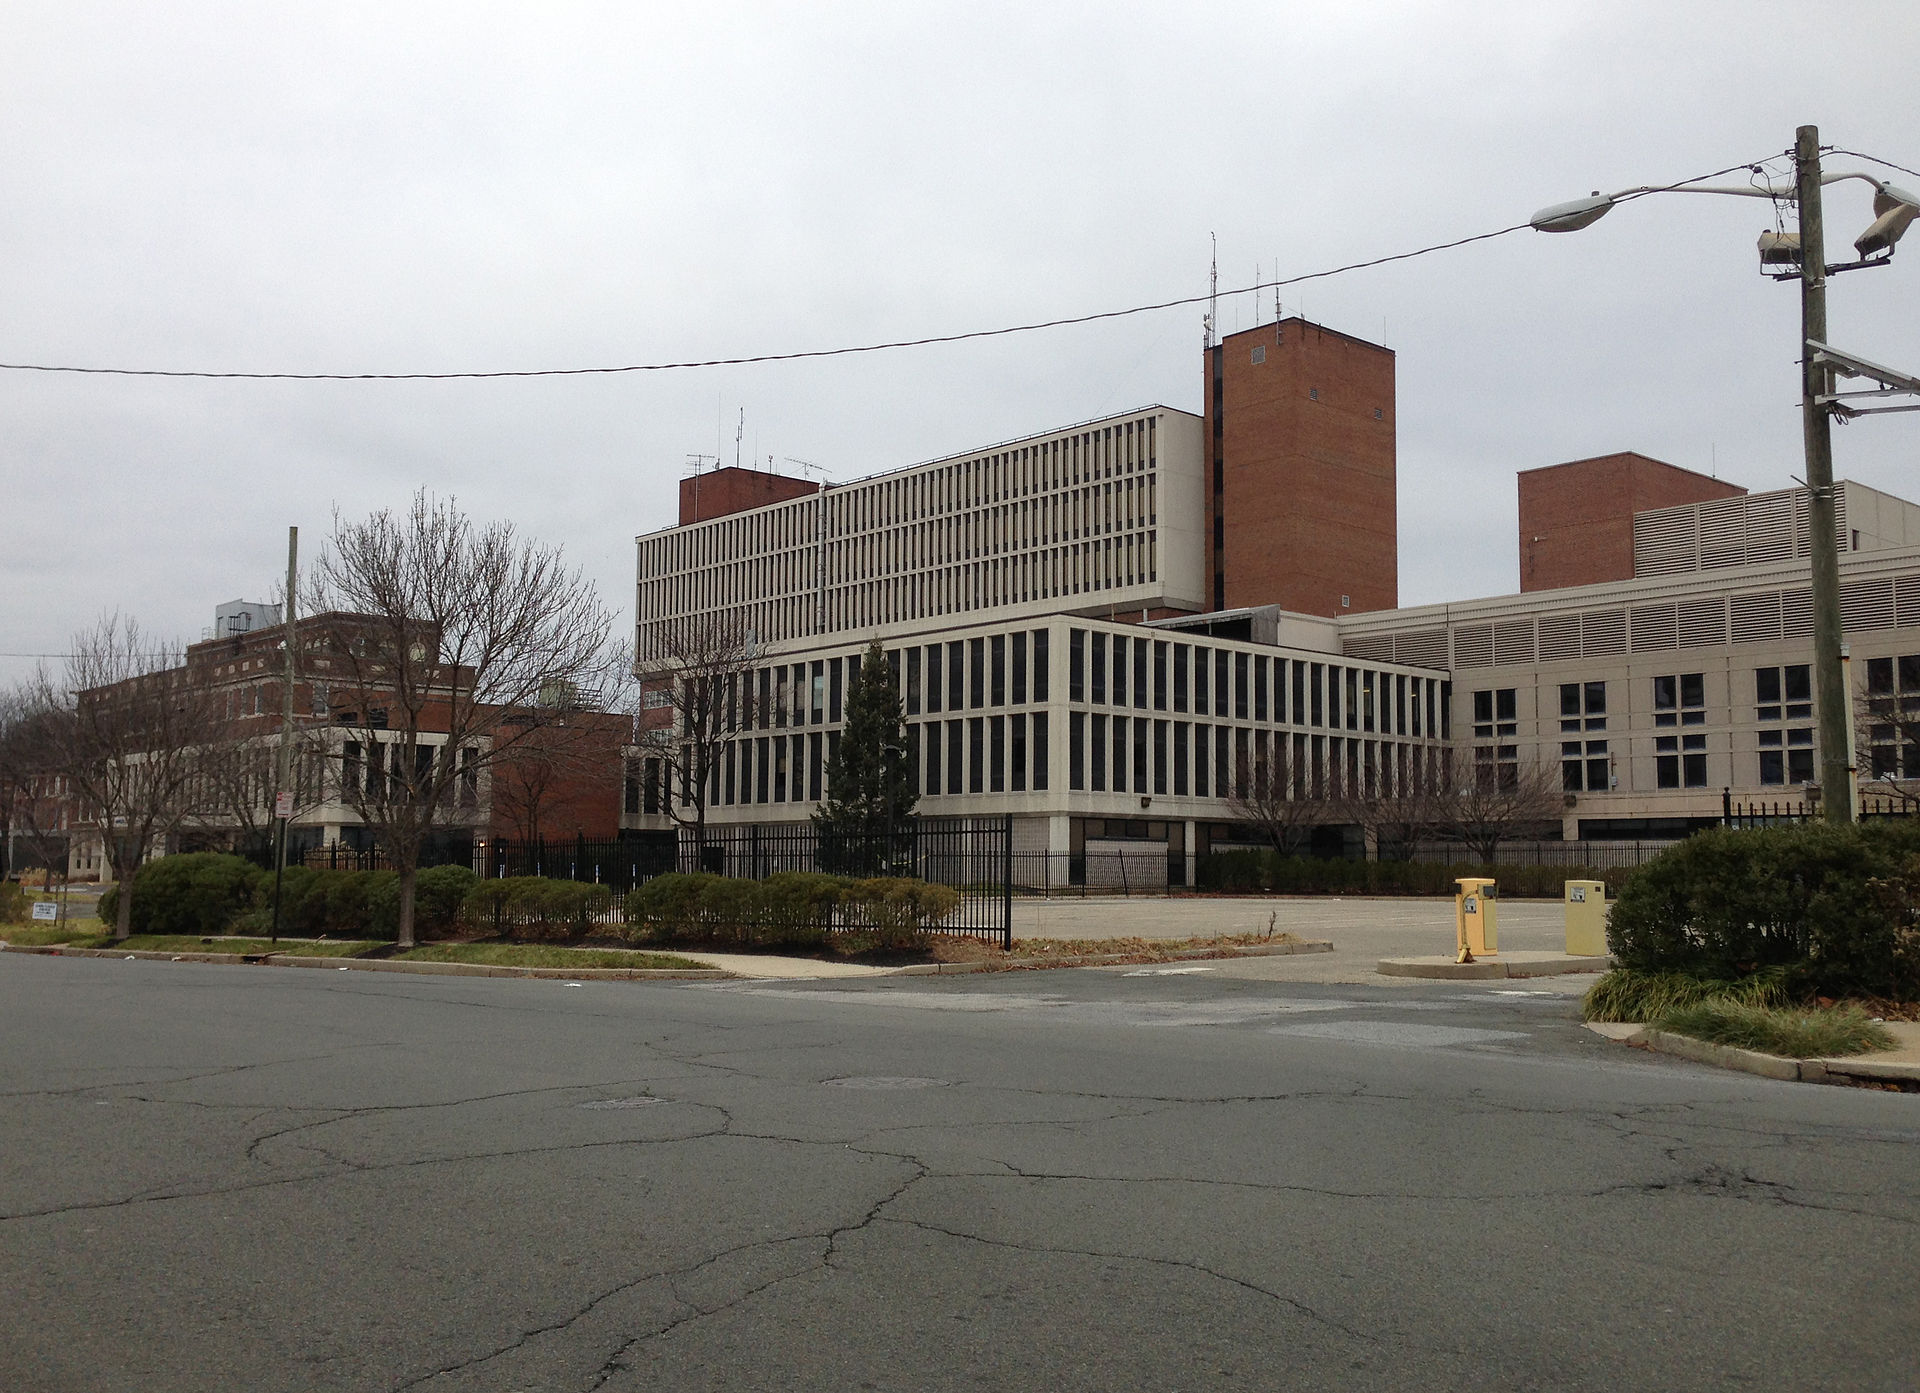 2014-12-20_14_54_30_The_former_Mercer_Medical_Center_on_Bellevue_Avenue_in_Trenton,_New_Jersey